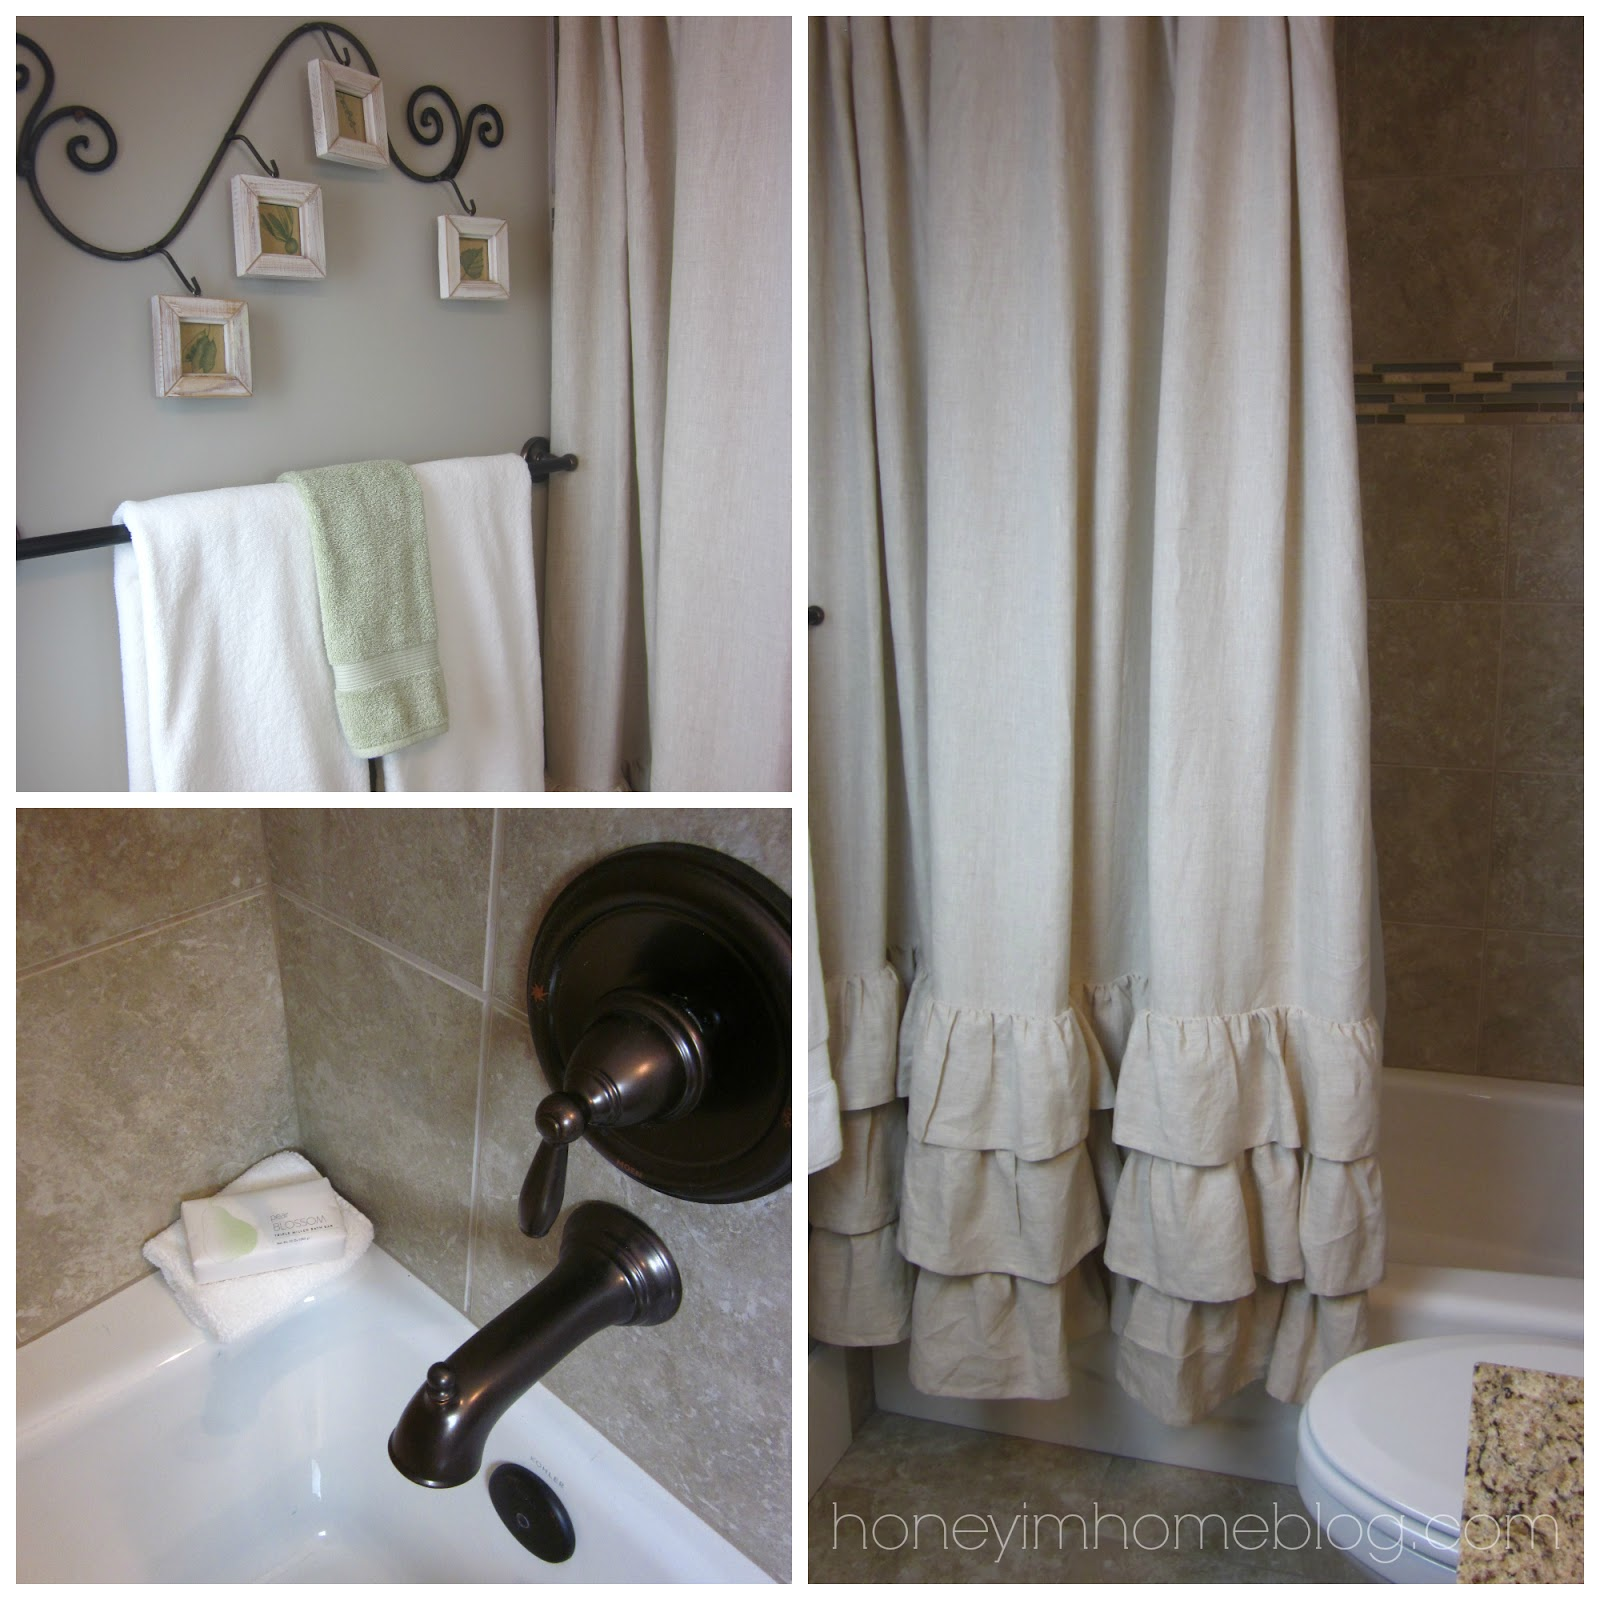 Pottery barn bathroom shower curtains -  Shower Curtain From Pottery Barn The Color Of Mine Is Flax It Also Comes In White A Really Pretty Grey I Hung It A Little High To Accent The